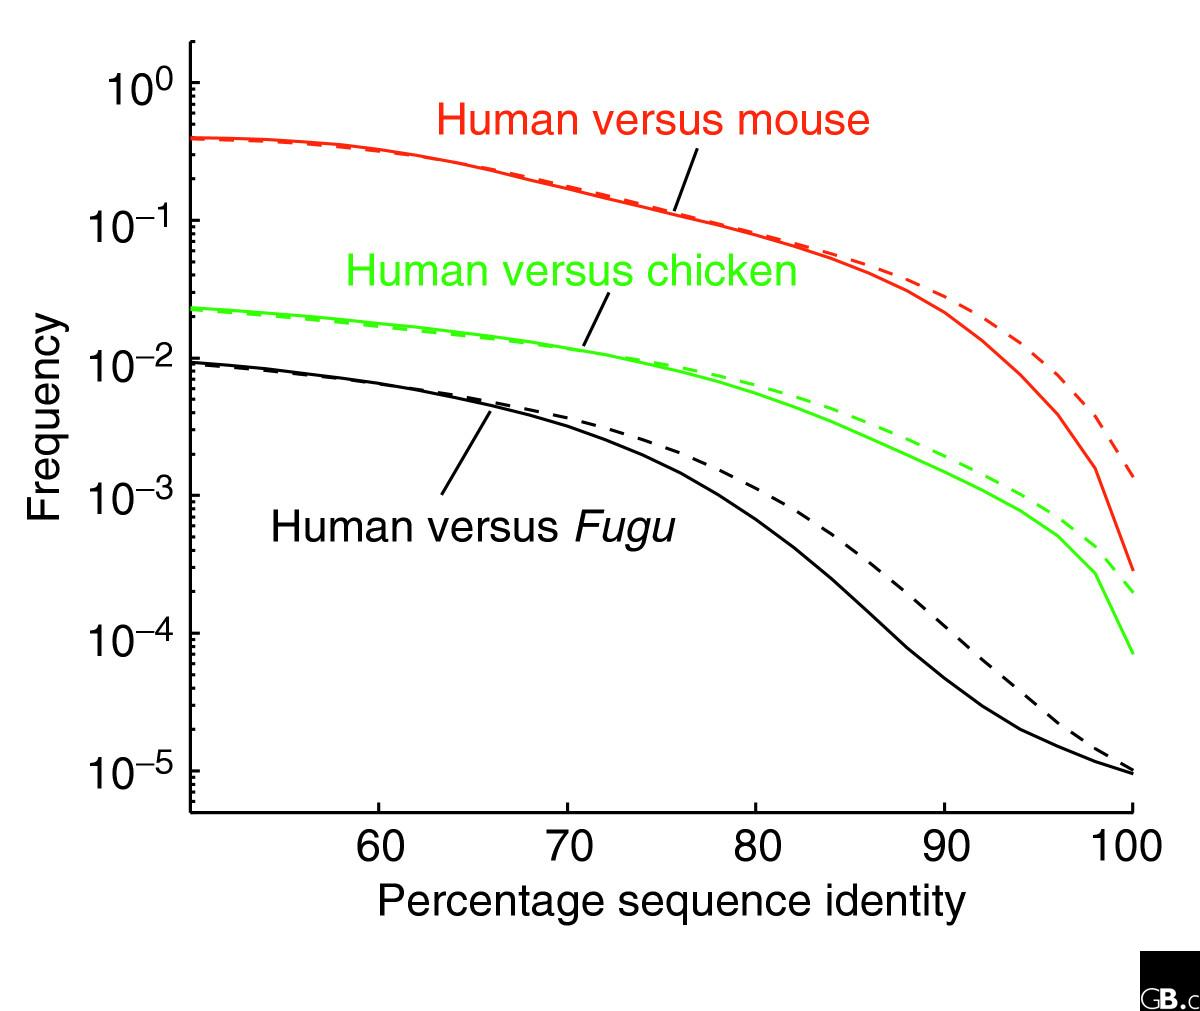 http://static-content.springer.com/image/art%3A10.1186%2Fgb-2005-6-7-115/MediaObjects/13059_2005_Article_935_Fig1_HTML.jpg